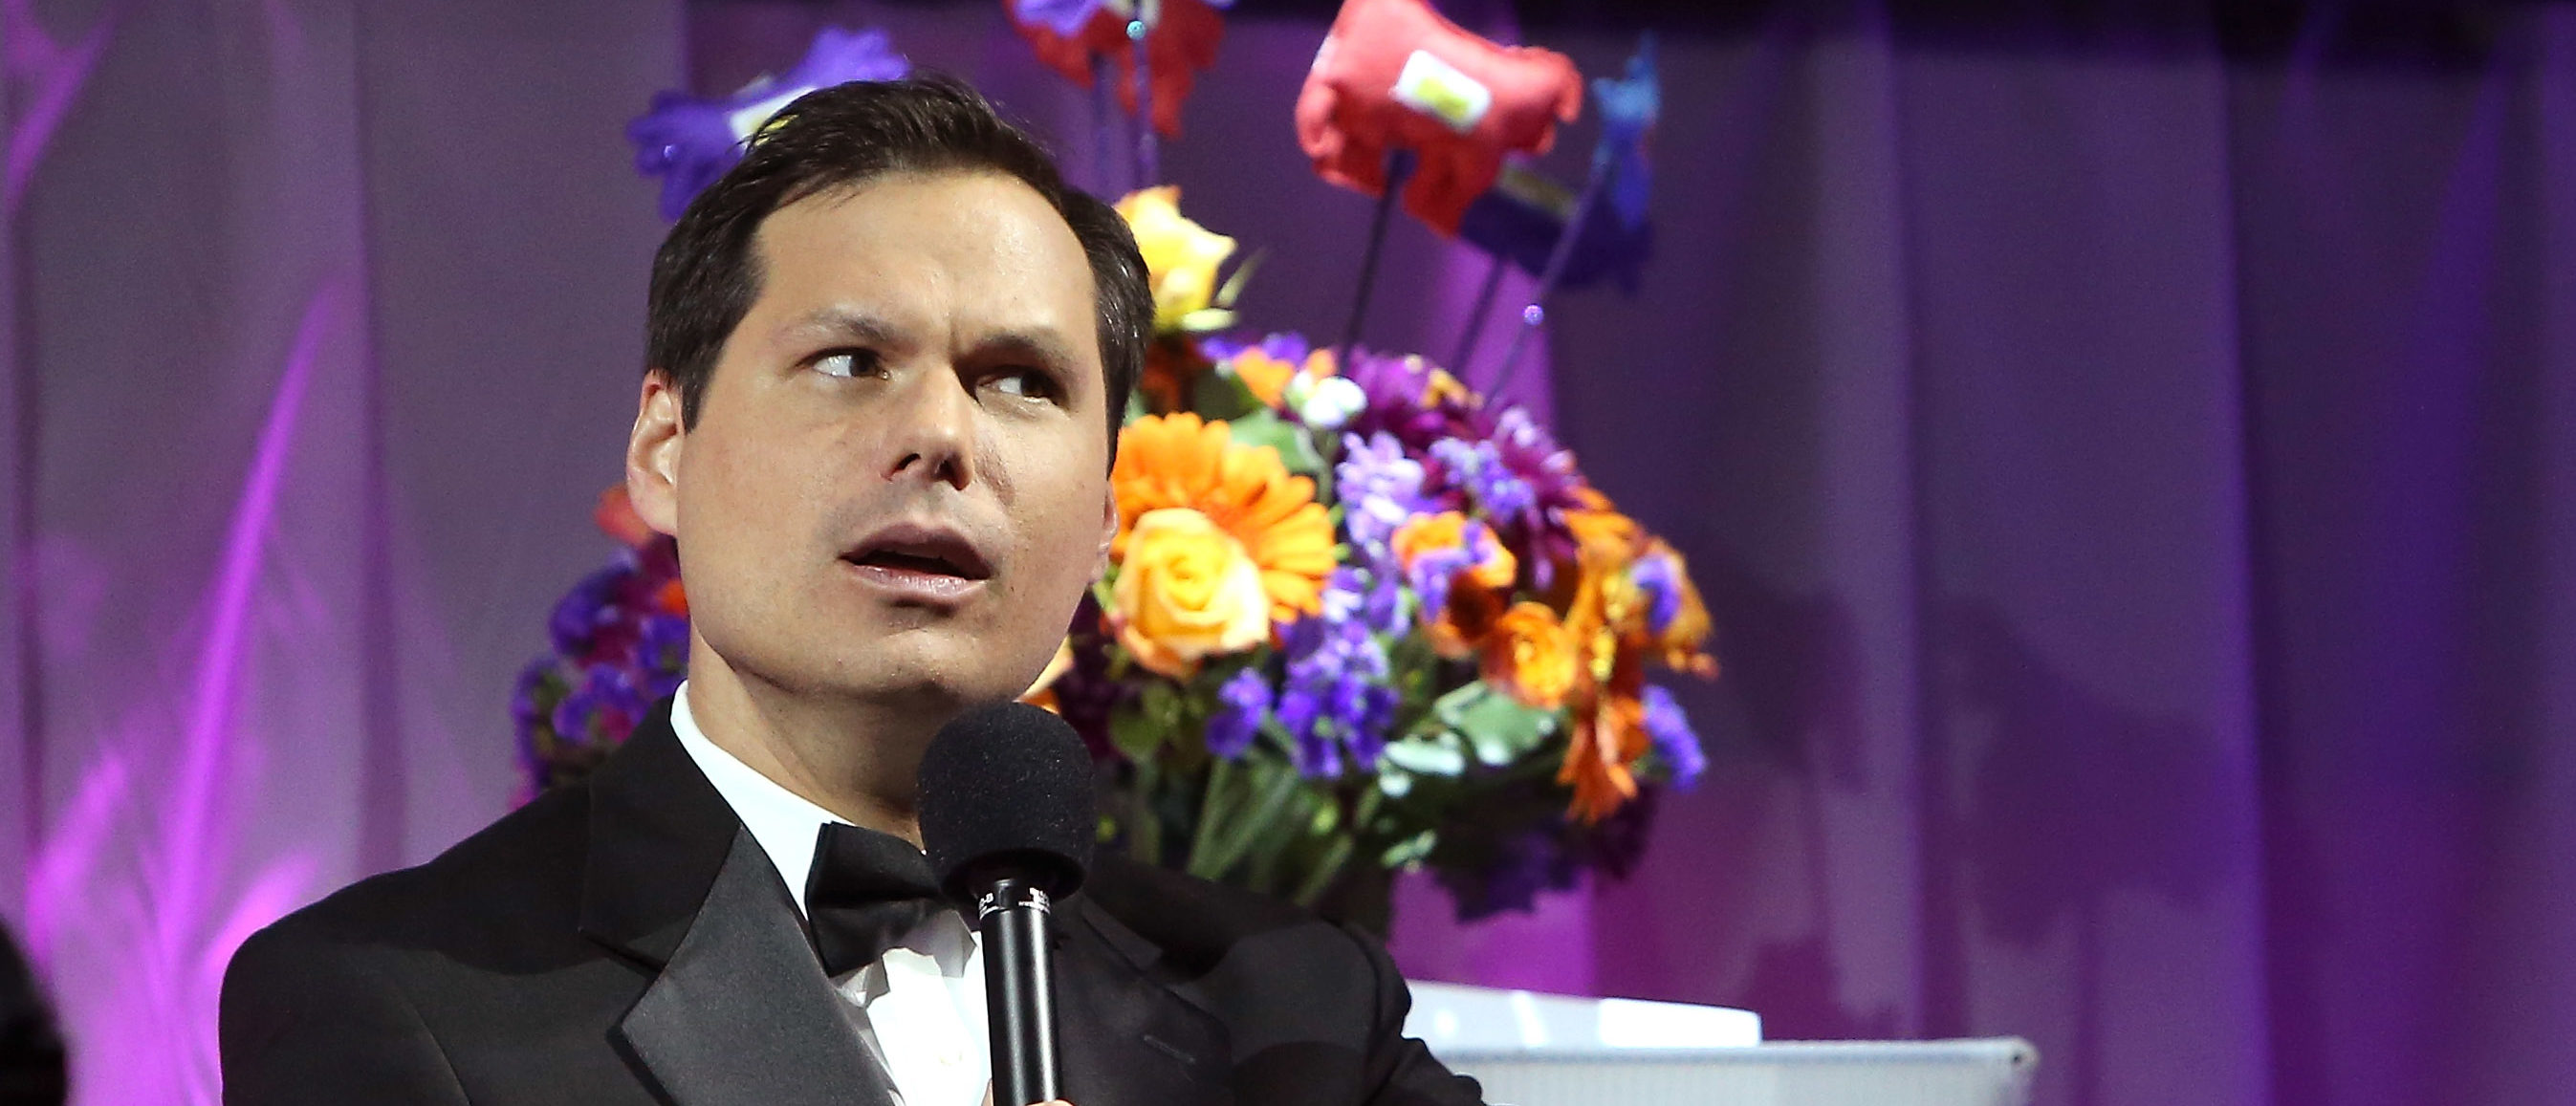 NEW YORK, NY - OCTOBER 15: Host Michael Ian Black speaks during The Friskies 2013 at Arena NYC on October 15, 2013 in New York City. (Photo by Mike Lawrie/Getty Images)